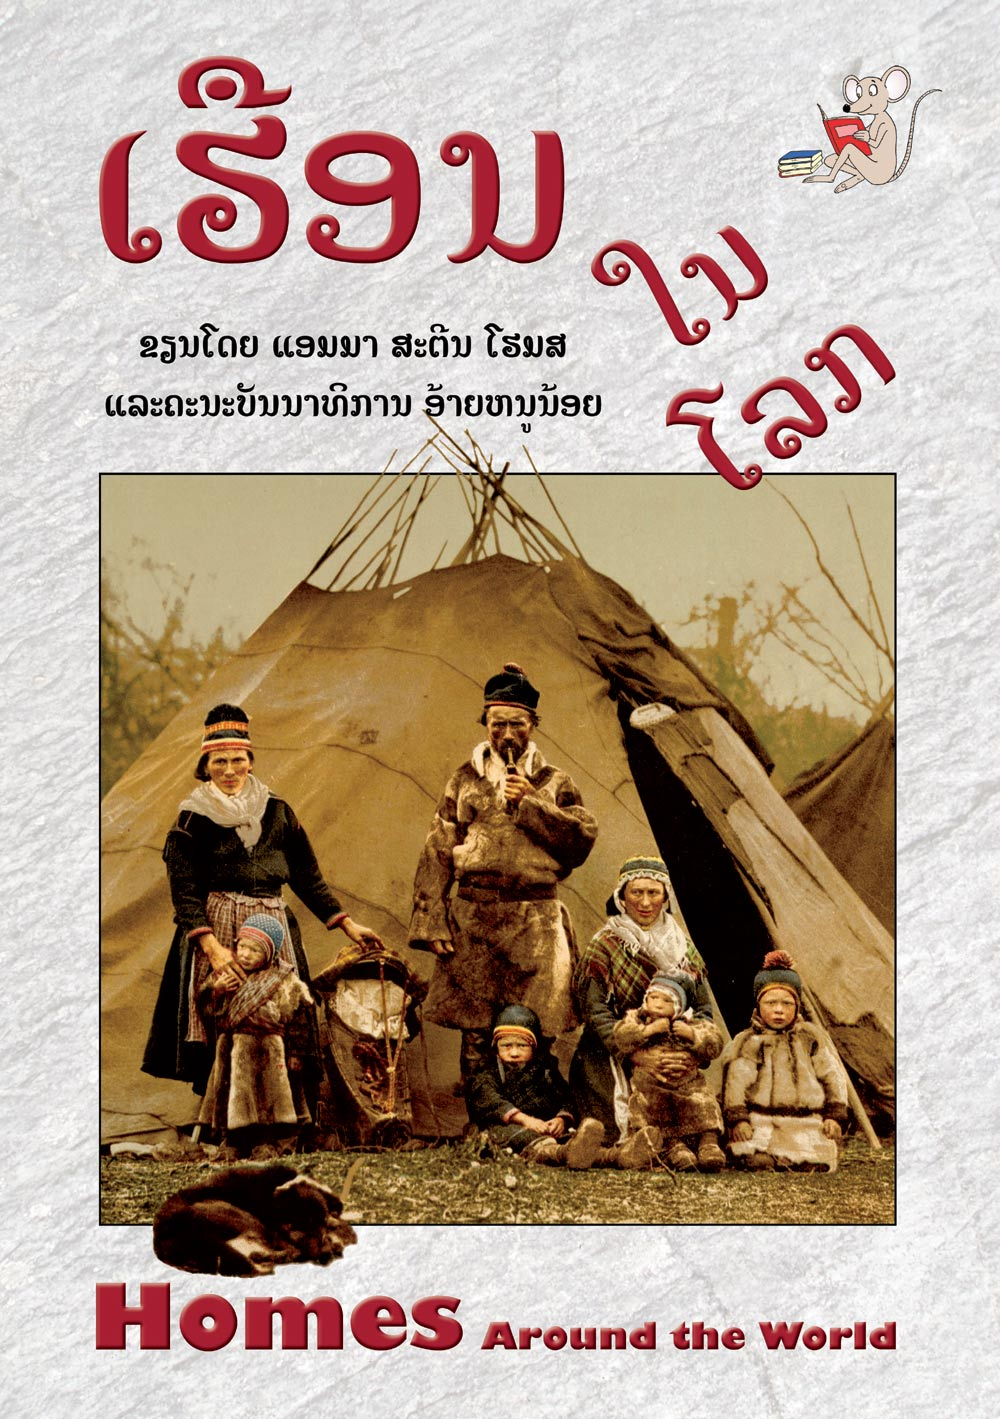 Homes Around the World large book cover, published in Lao and English